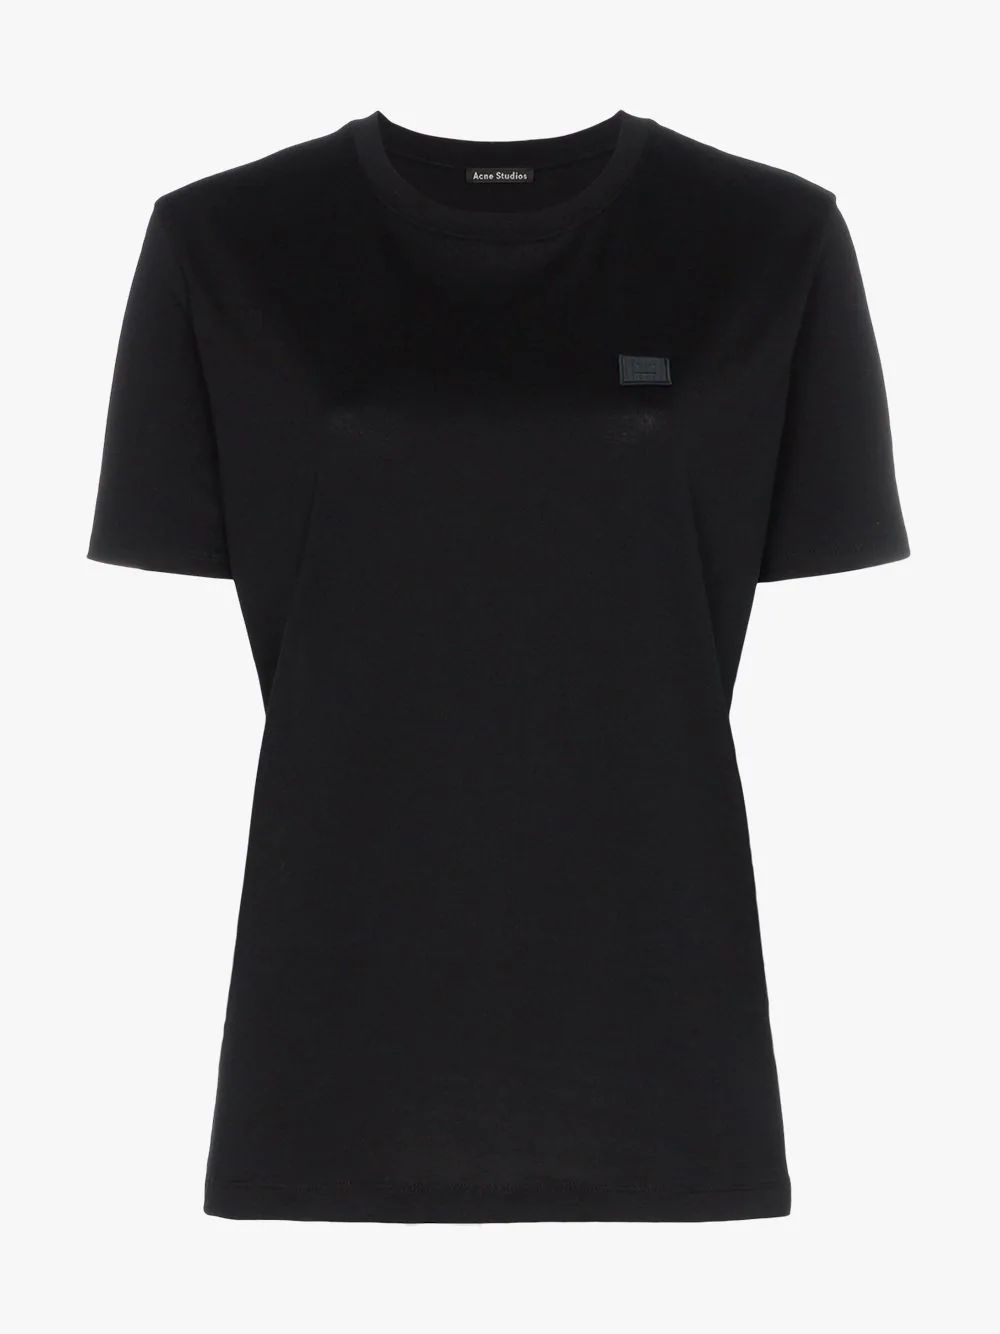 Acne Studios Elice T-shirt In Black Cotton